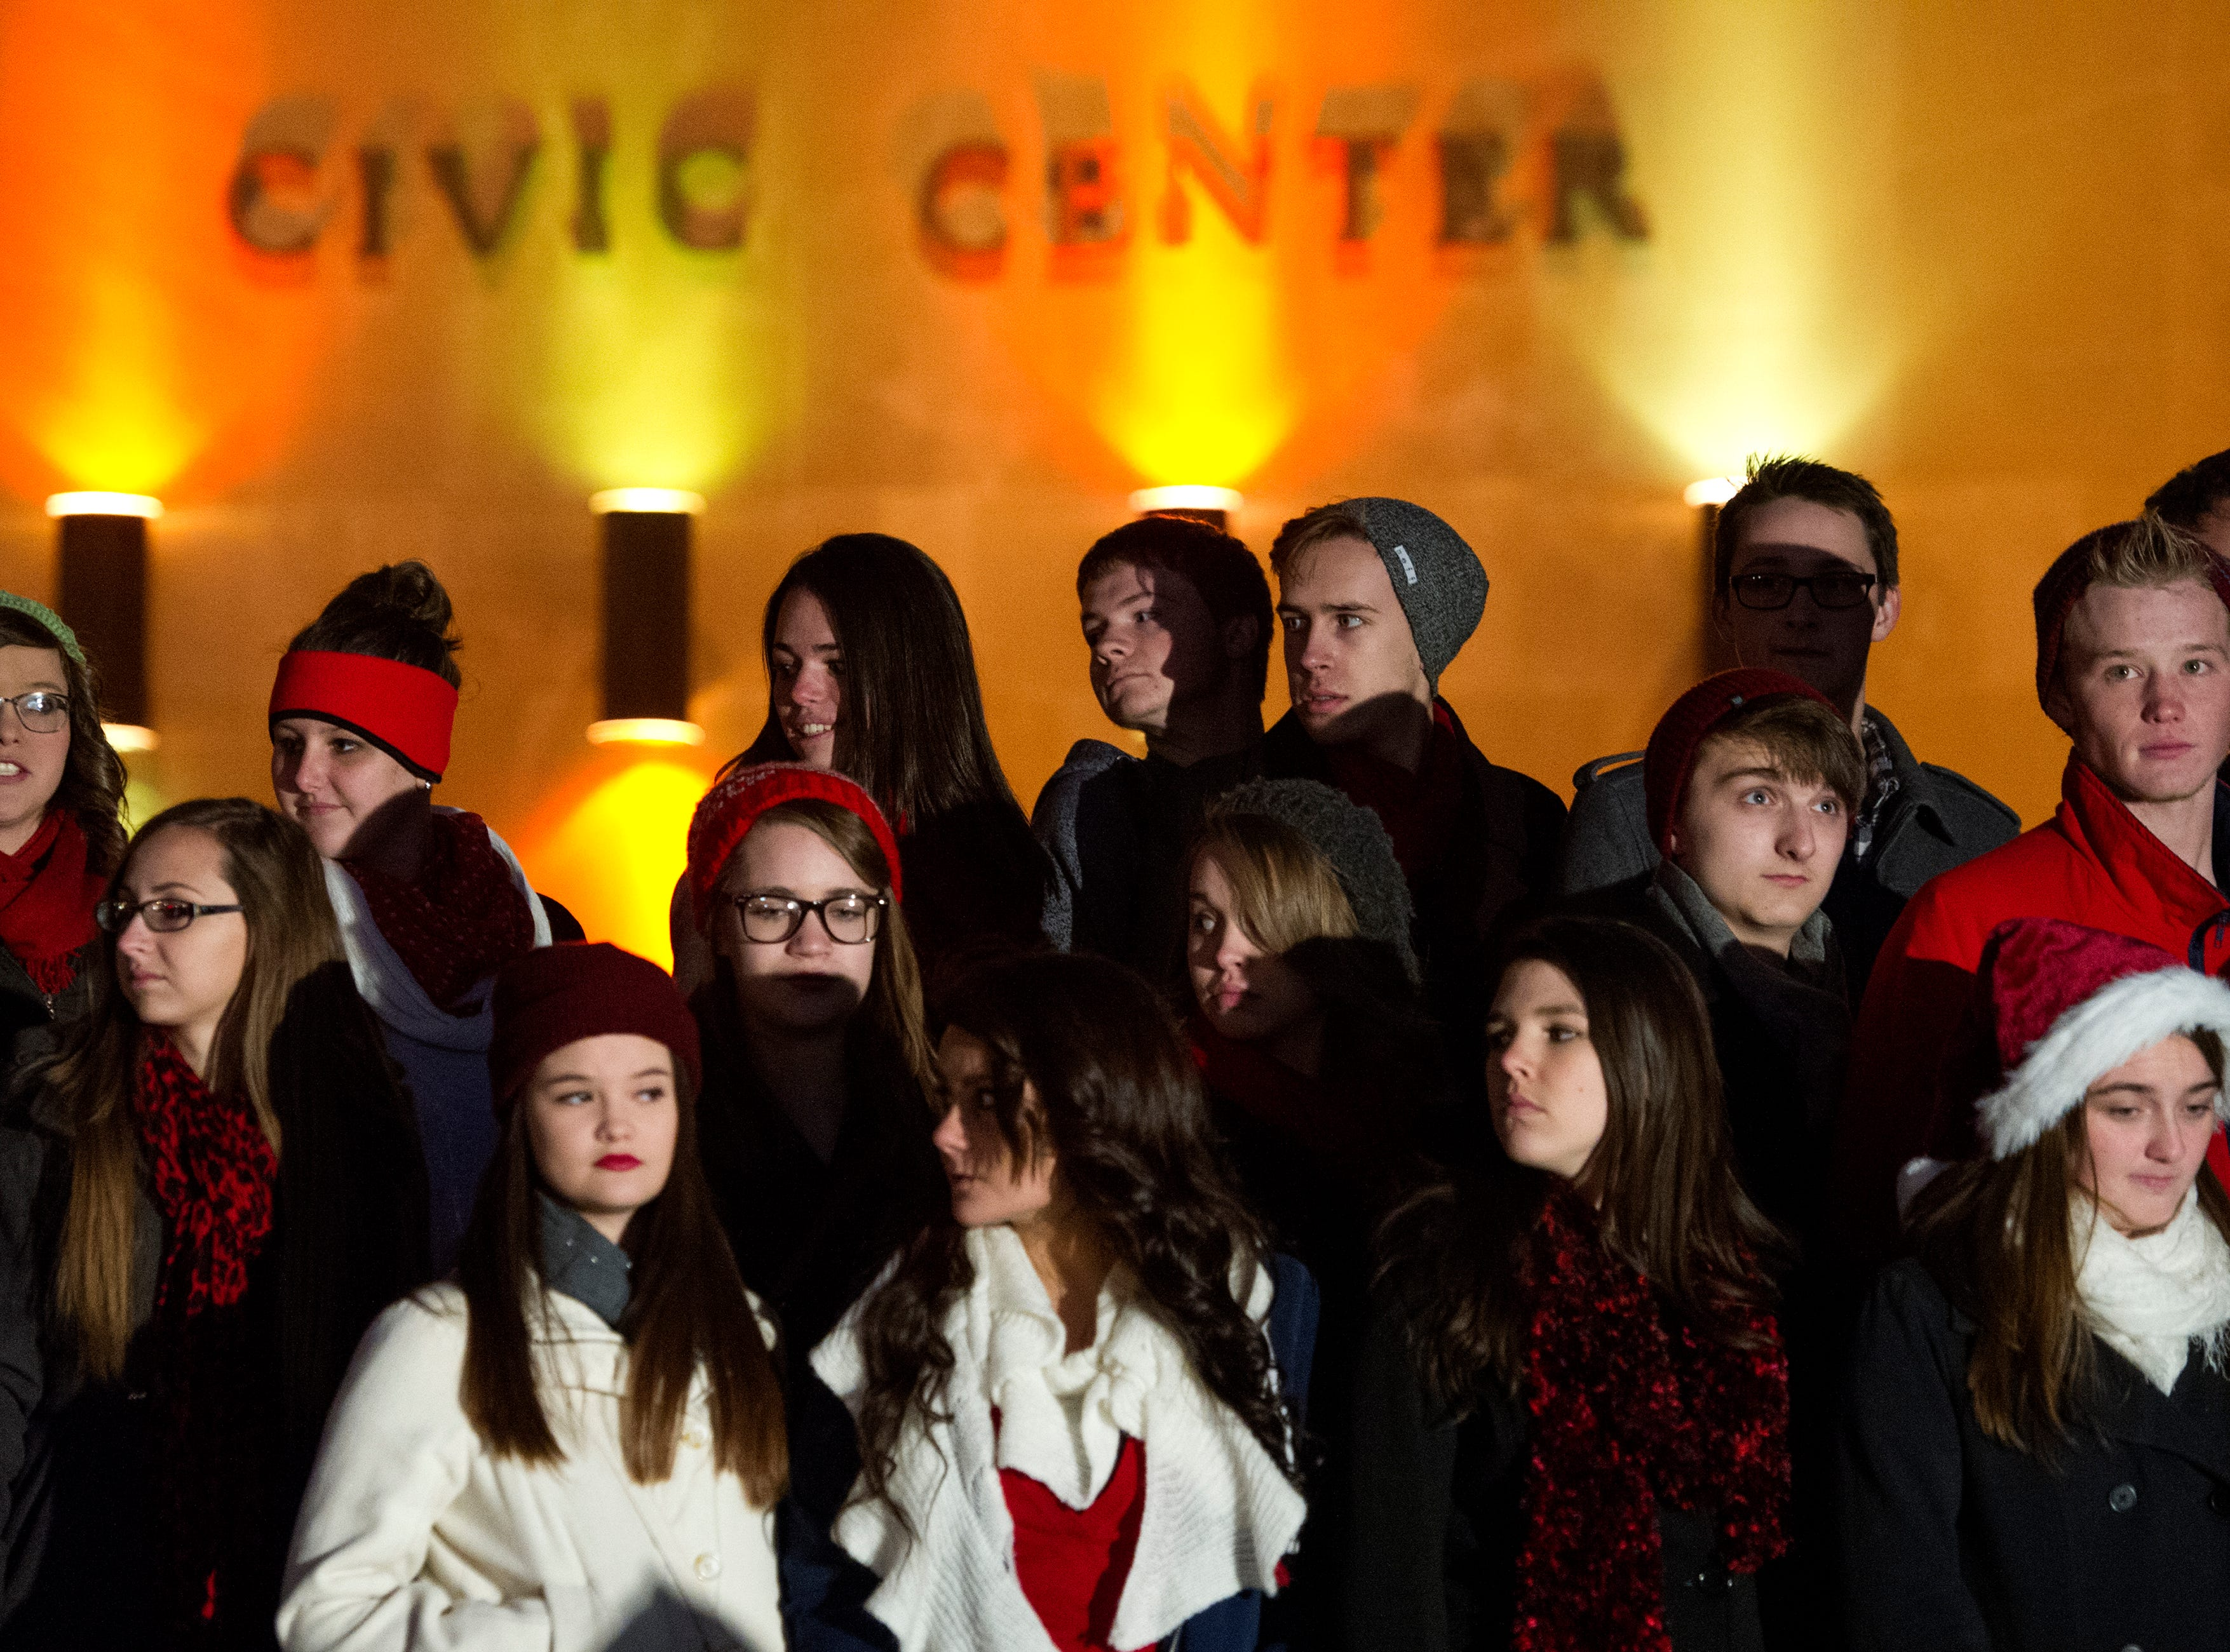 The Central High School concert choir prepares to sing during the lighting of the Civic Center Christmas treeThursday, Nov. 20, 2014.